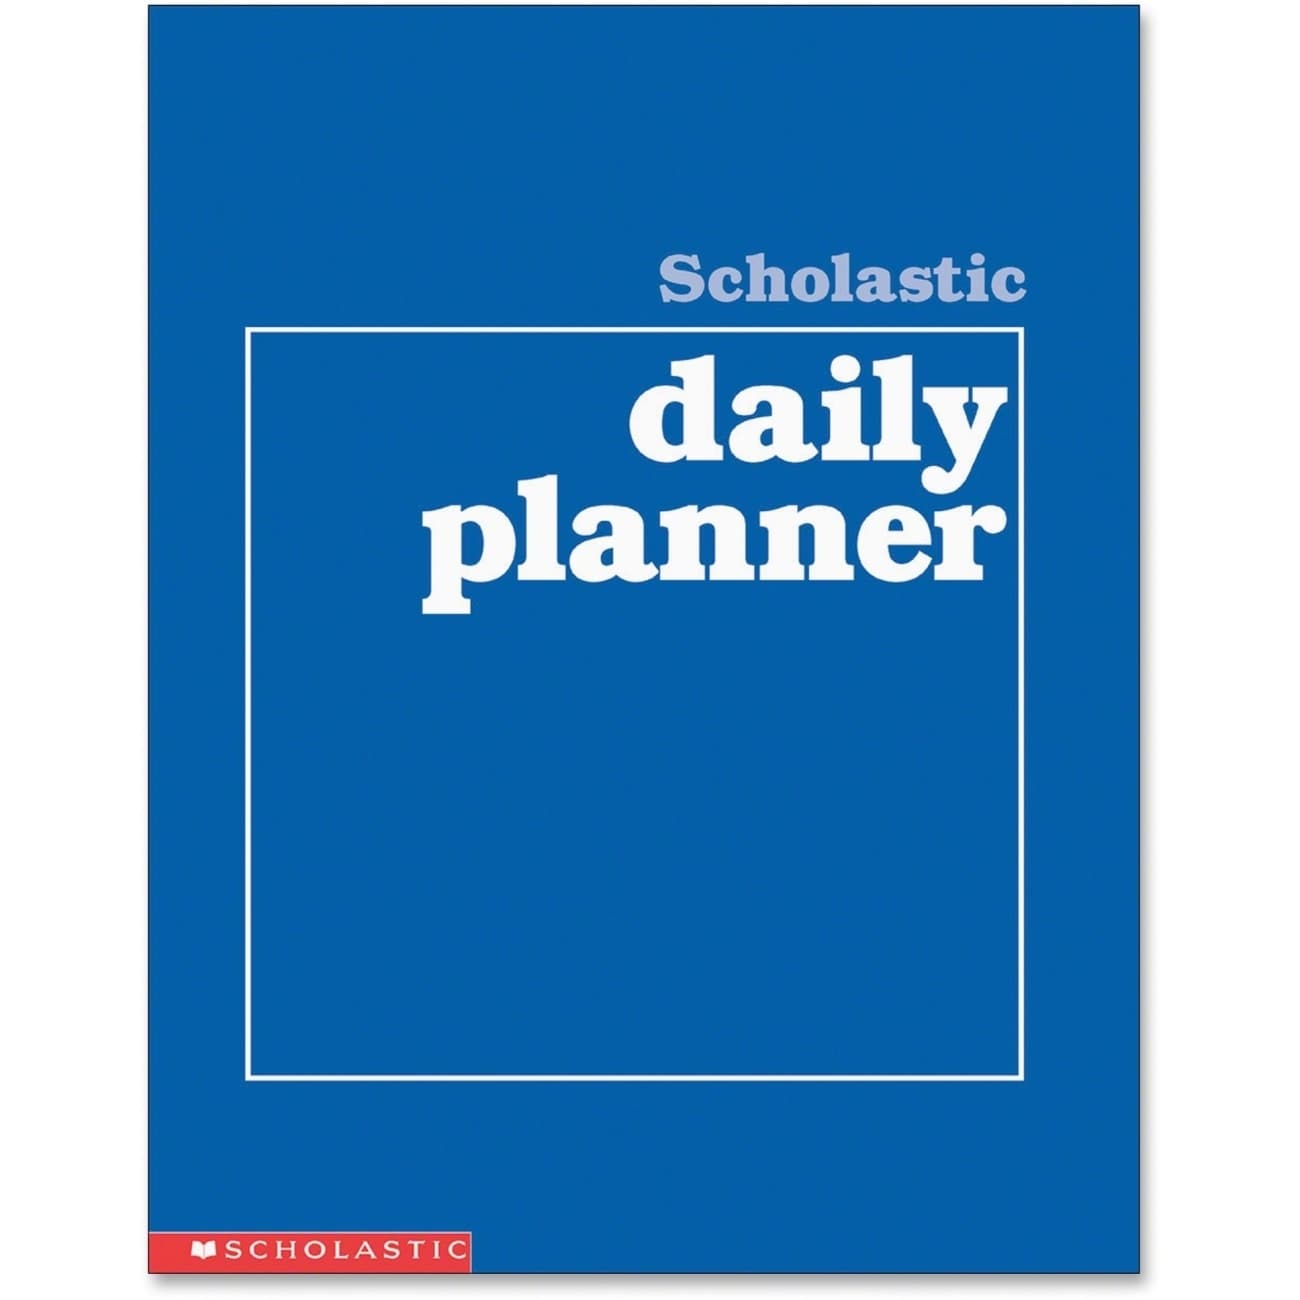 Scholastic SHS0590490672 Daily Planner, Grades K-6, Letter Size, 88 Pages